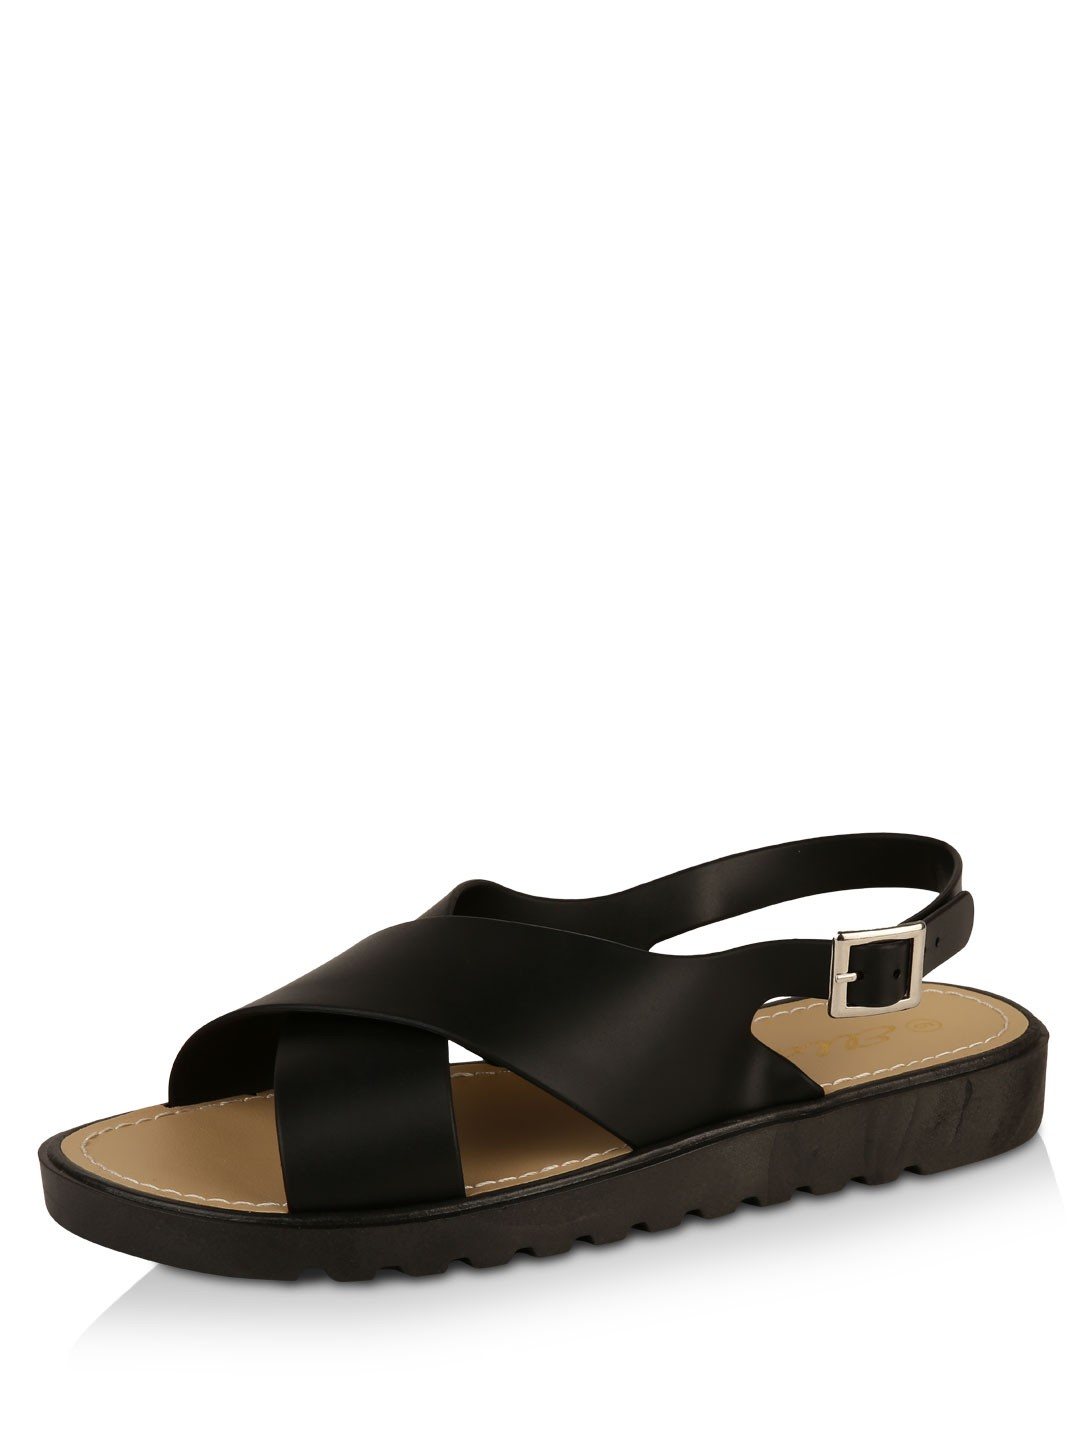 Ella Shoes Black Buckle Detail Sandals 1